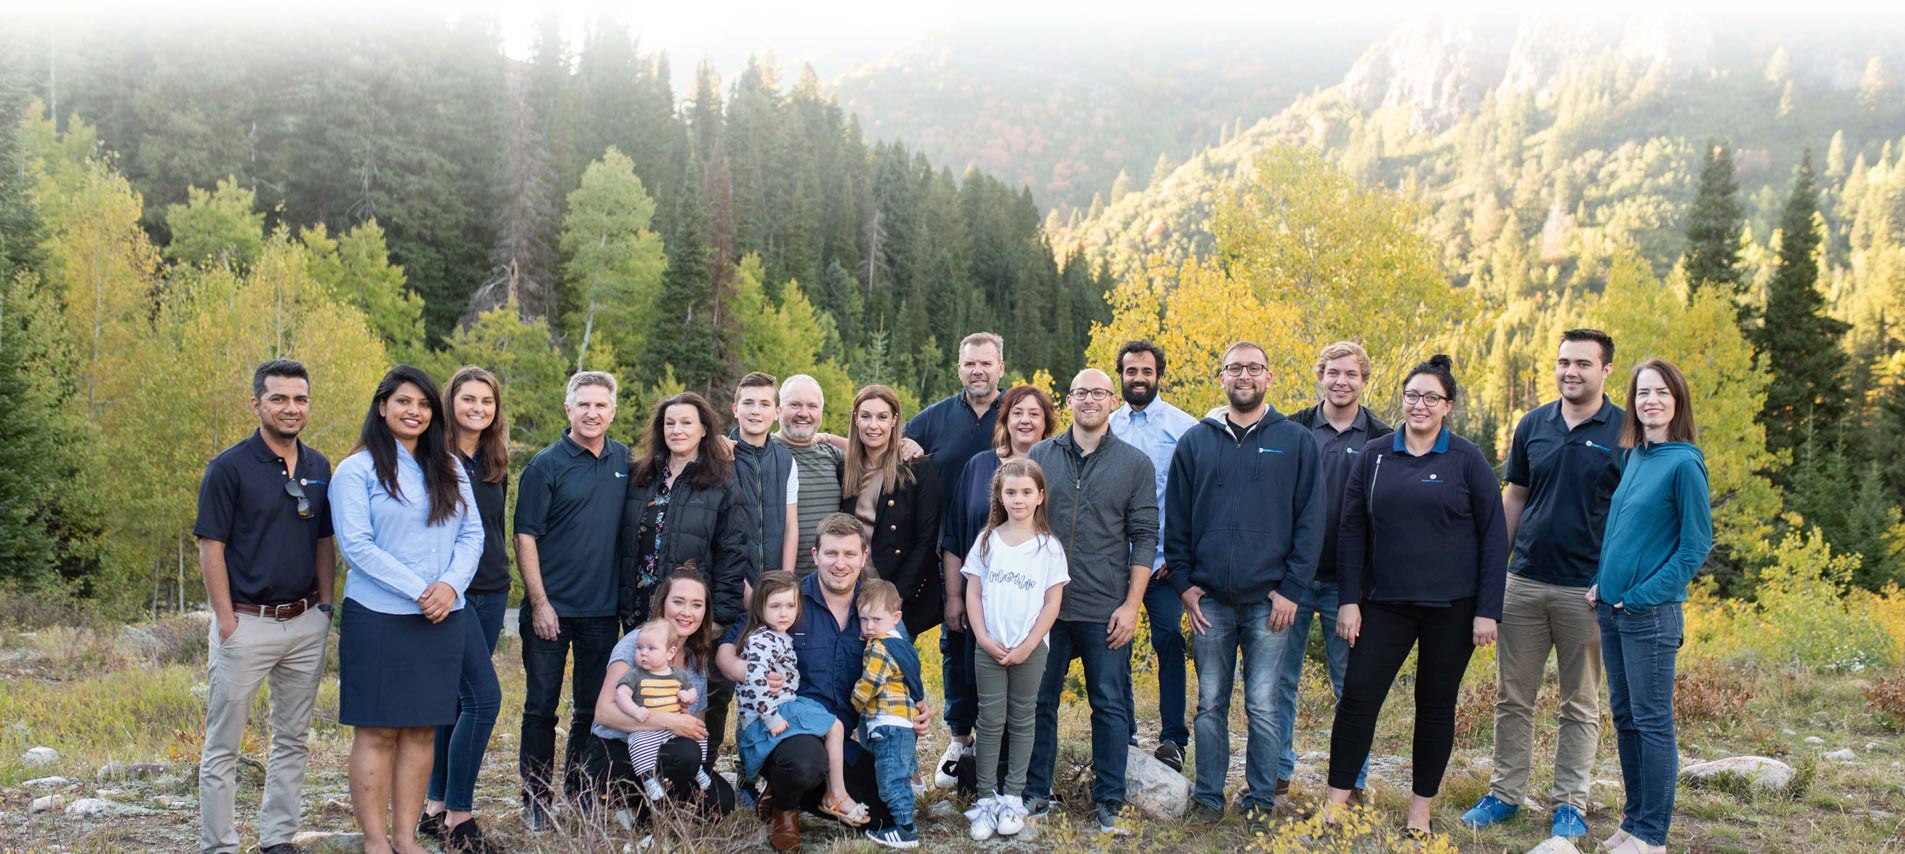 SolarReviews Group Photo